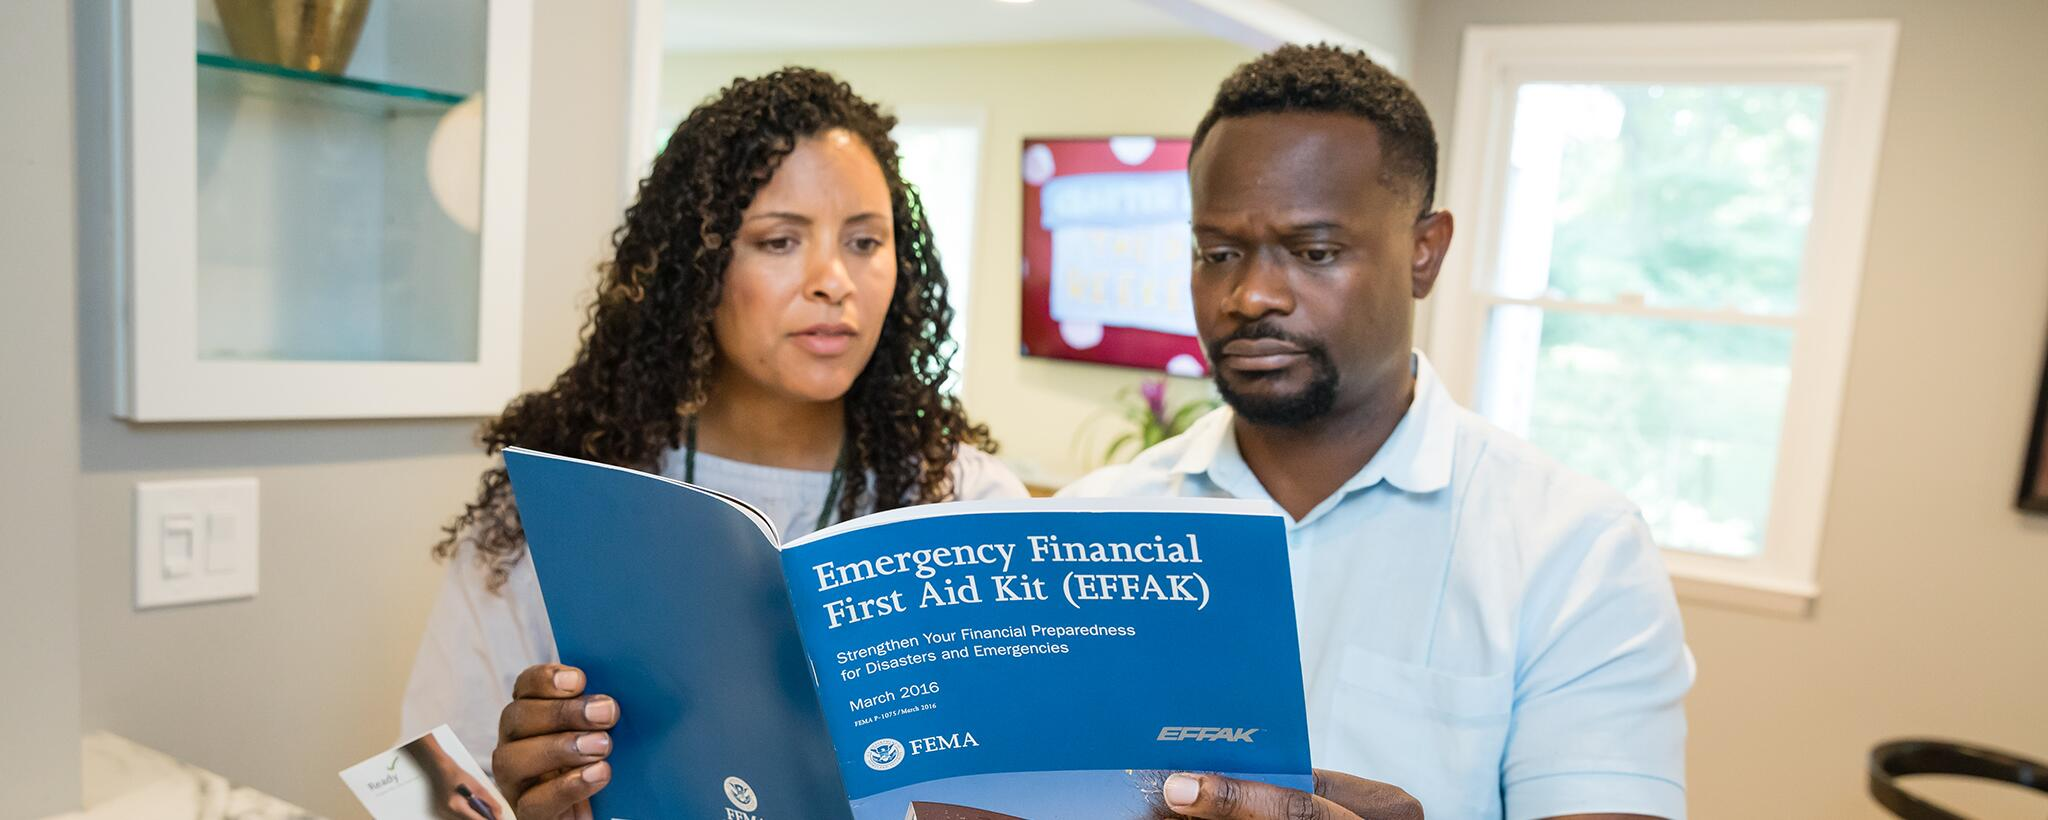 a couple looks at an Emergency Financial First Aid Kit